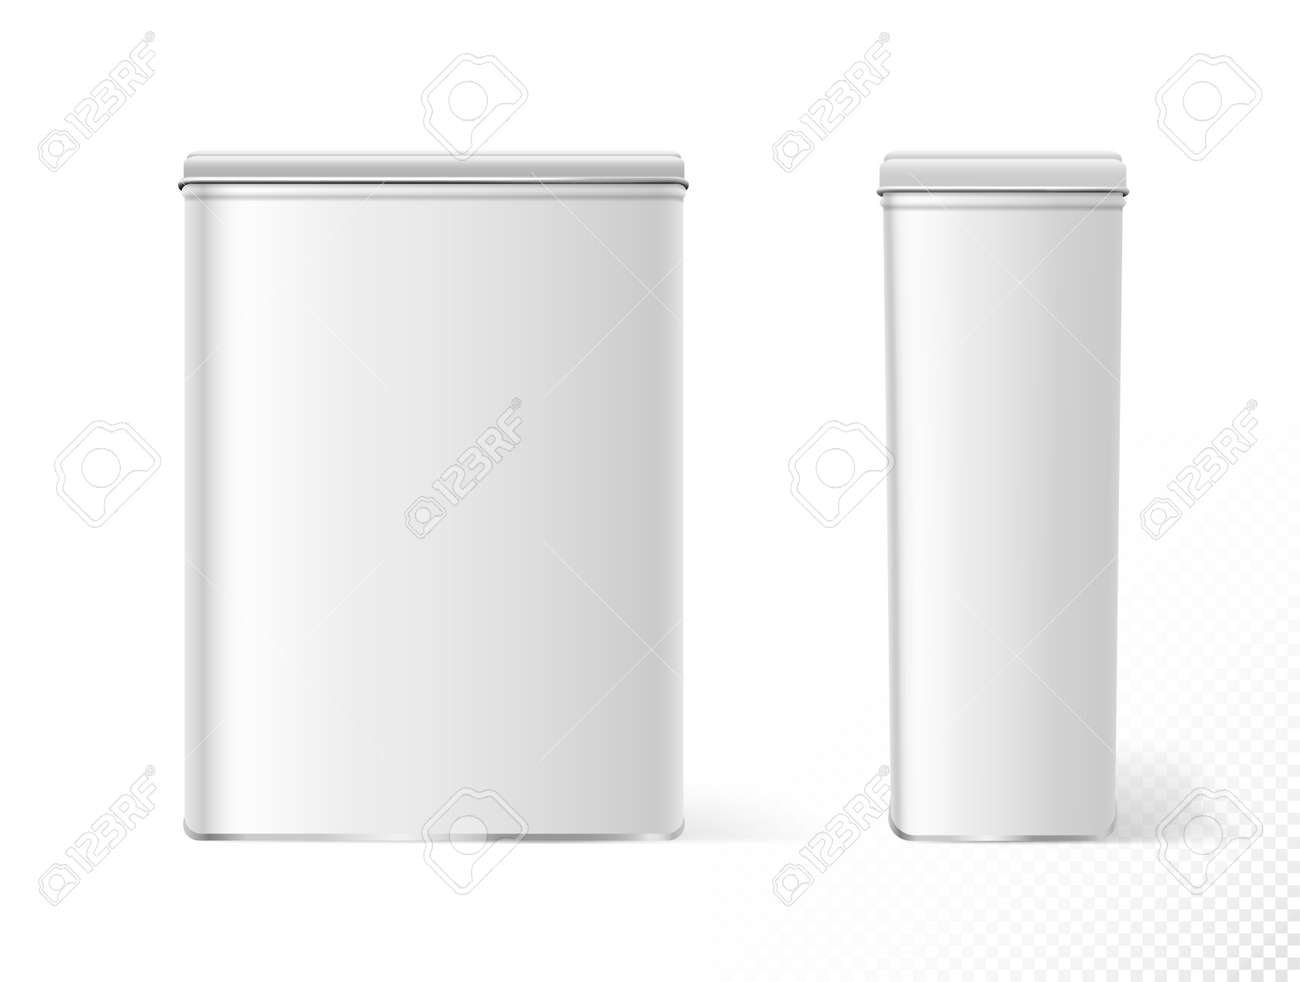 Food containers. Realistic white metal tin food storage empty blank, front and side view - 157752238